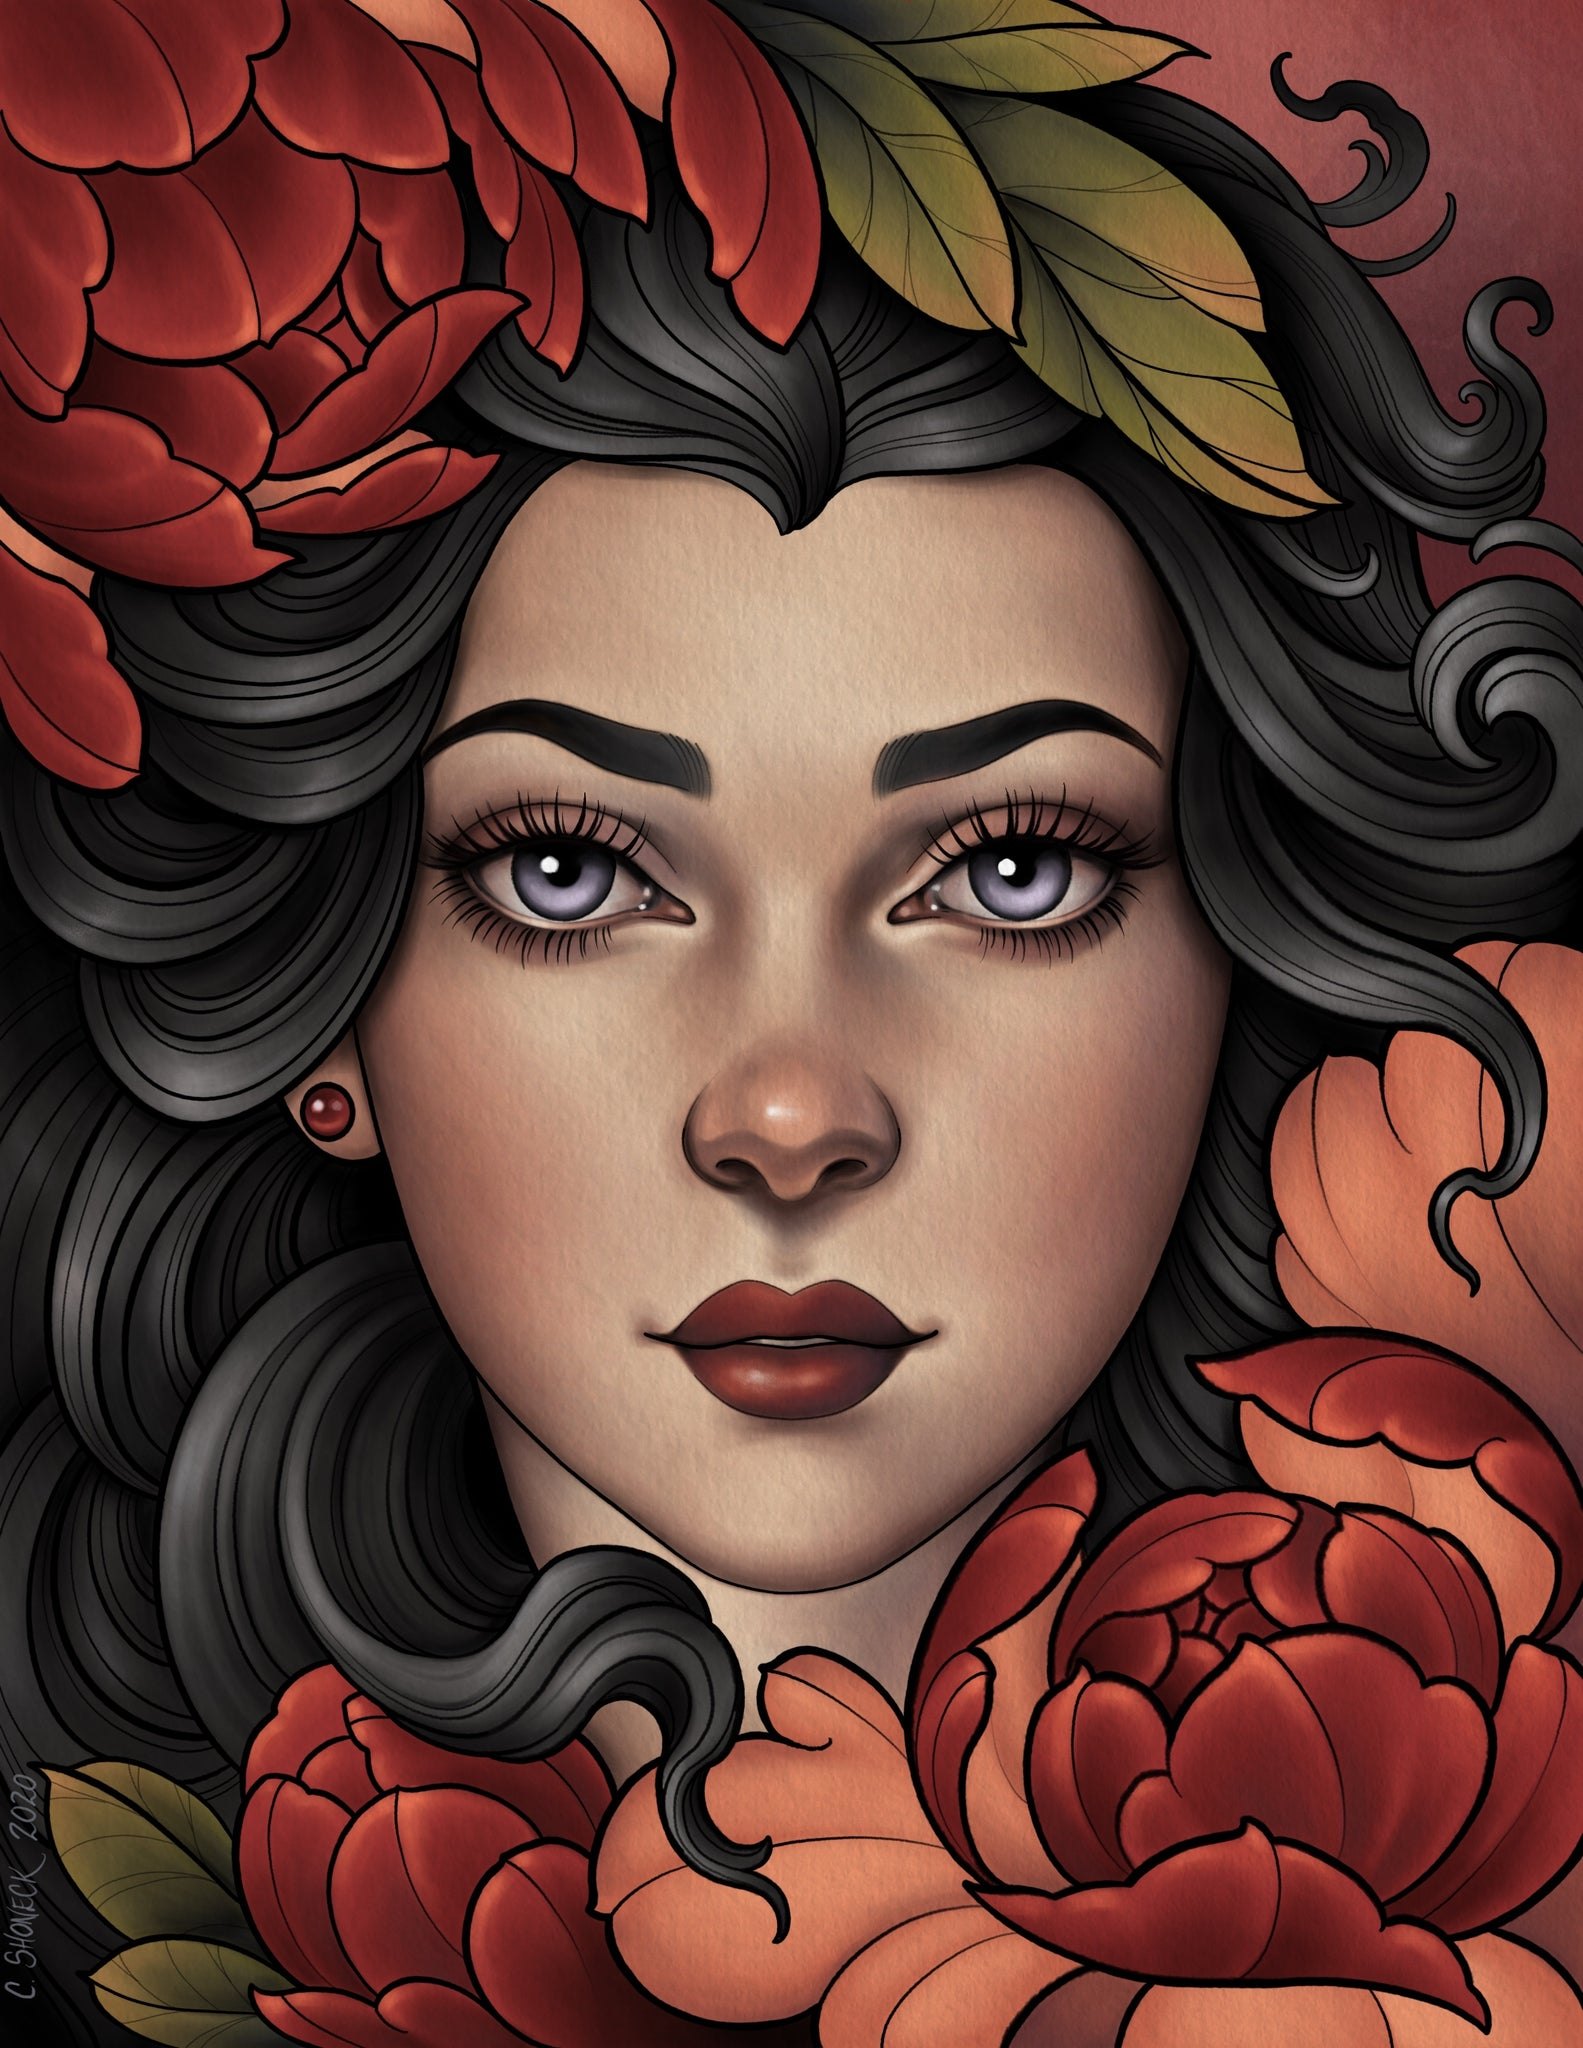 Peony lady - brunette/red